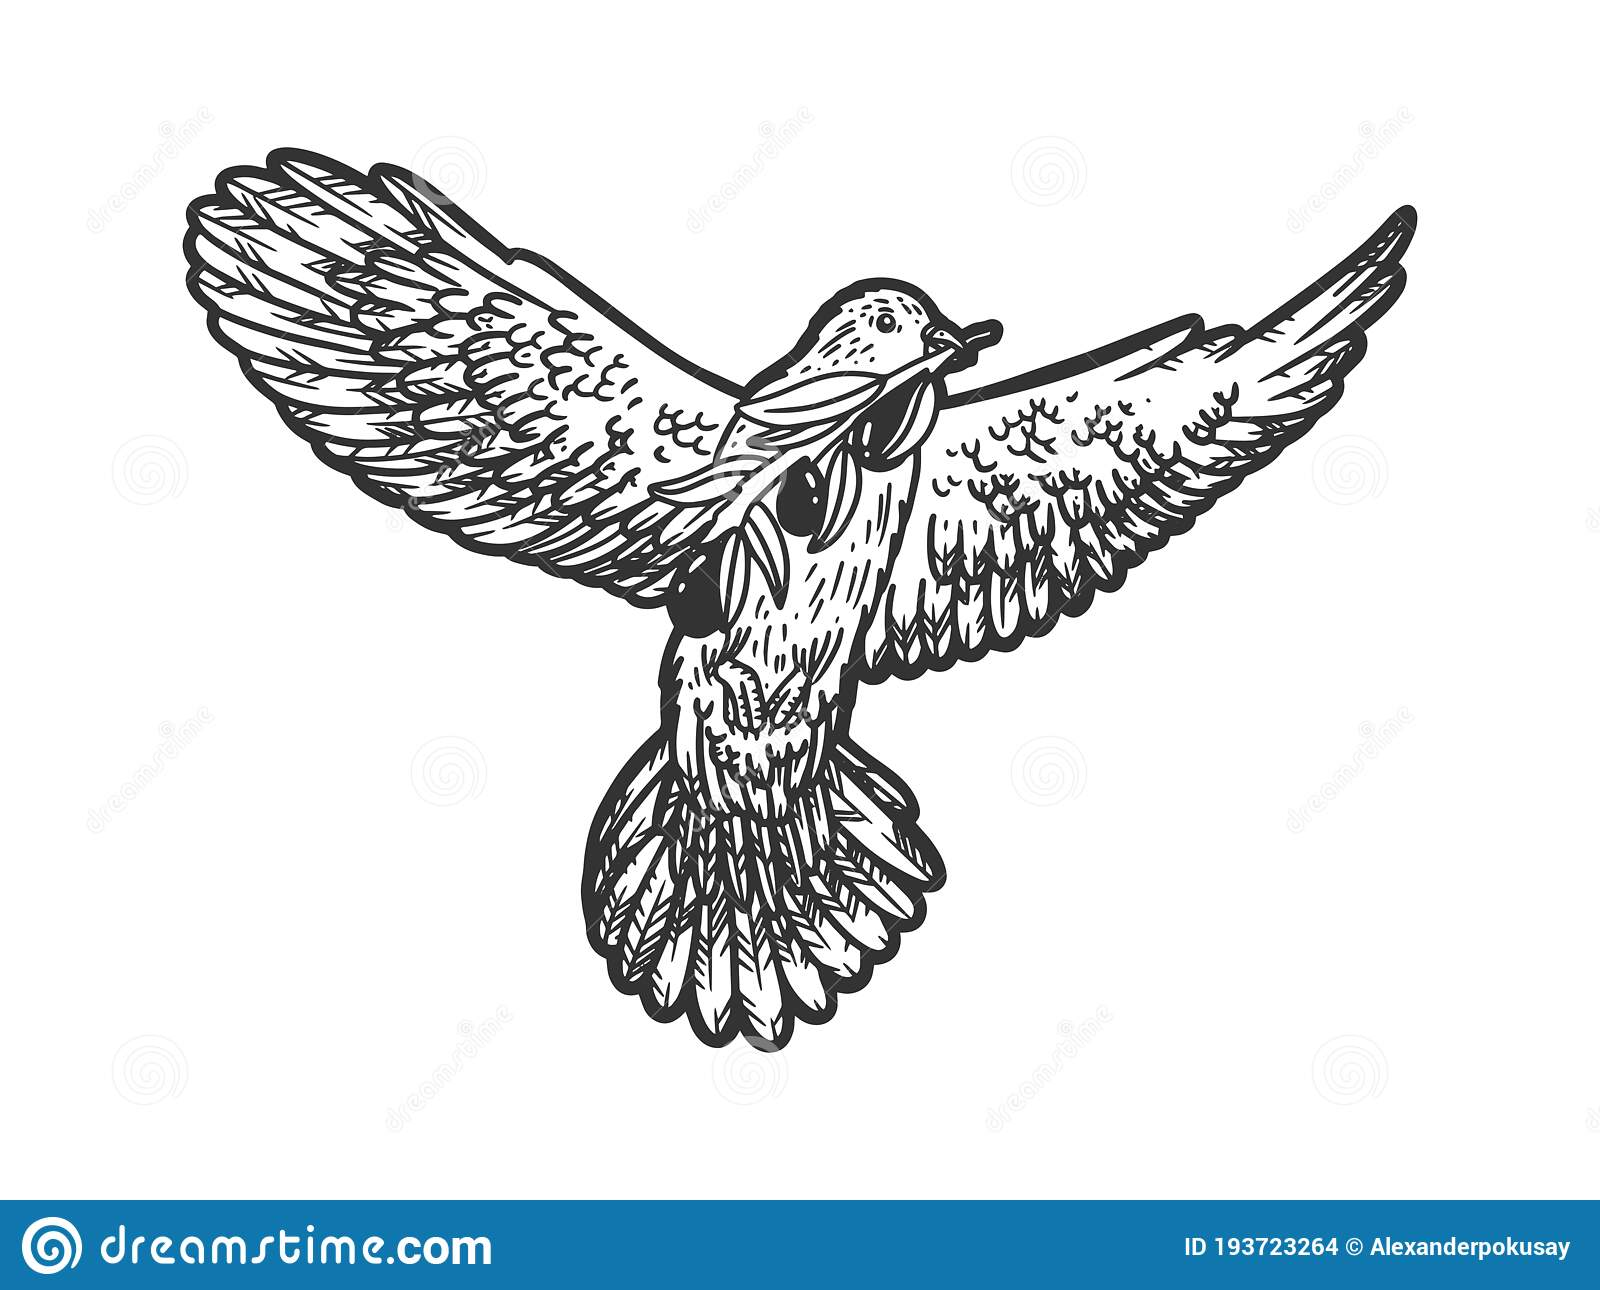 Dove With Olive Branch Sketch Vector Illustration Stock Vector Illustration Of Engraved Print 193723264